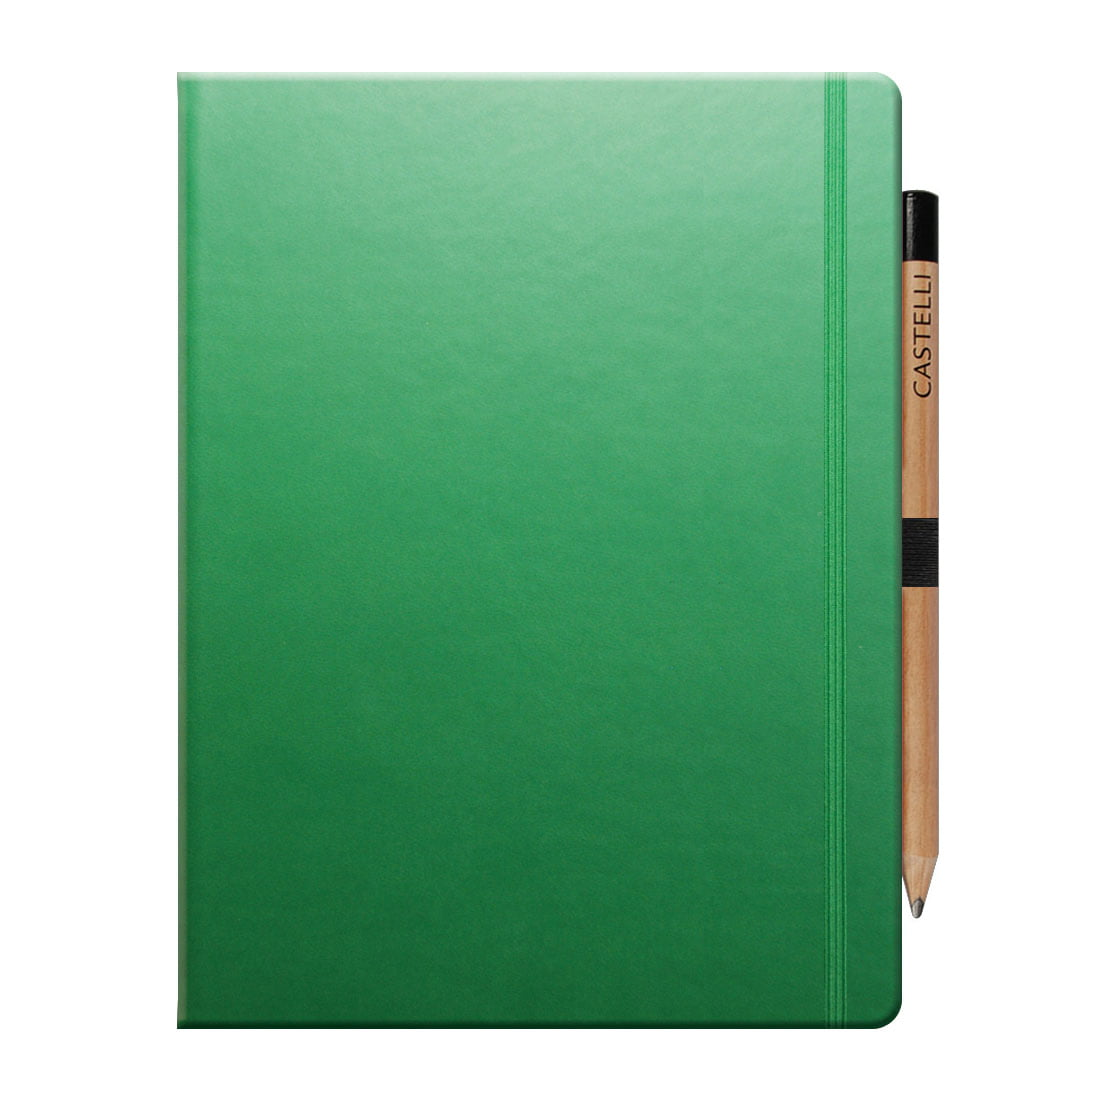 Soft touch padded cover, notebook in green elasticate closure band, internal document pocket, ivory paper, pen loop with pencil included.